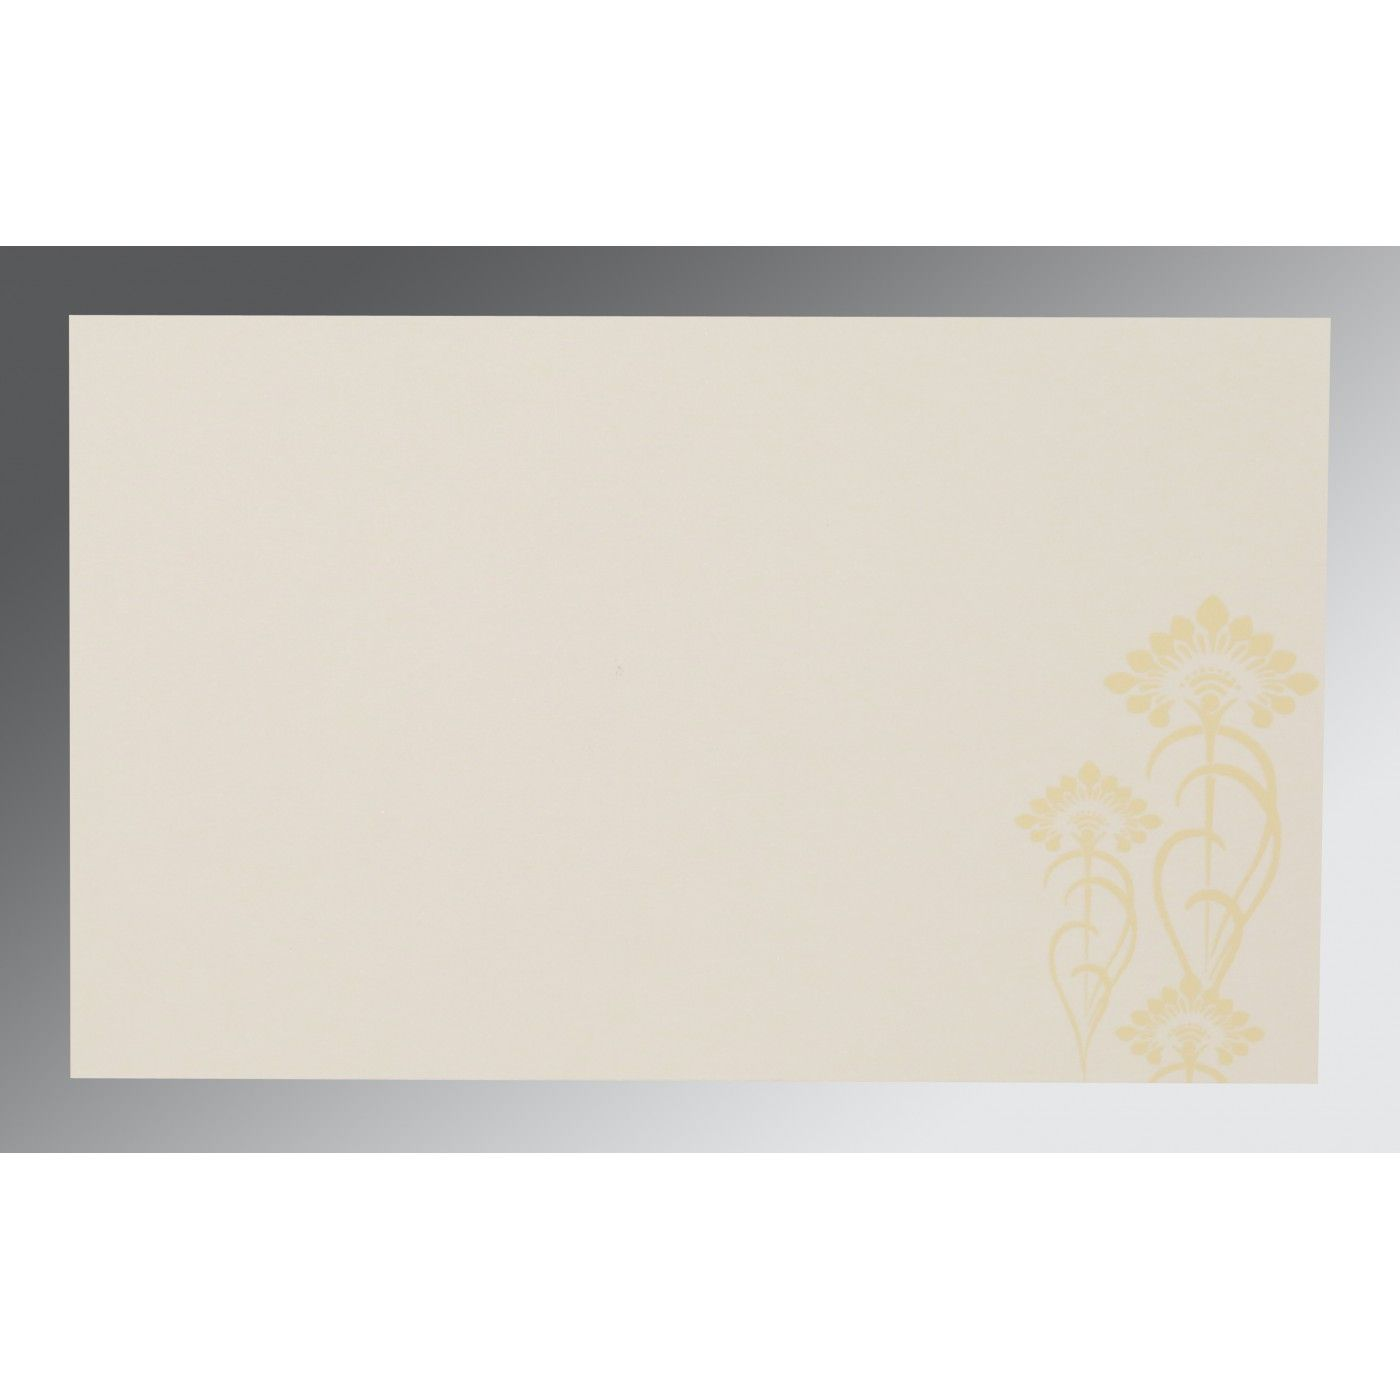 CREAM SHIMMERY SCREEN PRINTED WEDDING CARD : CG-8239I - IndianWeddingCards